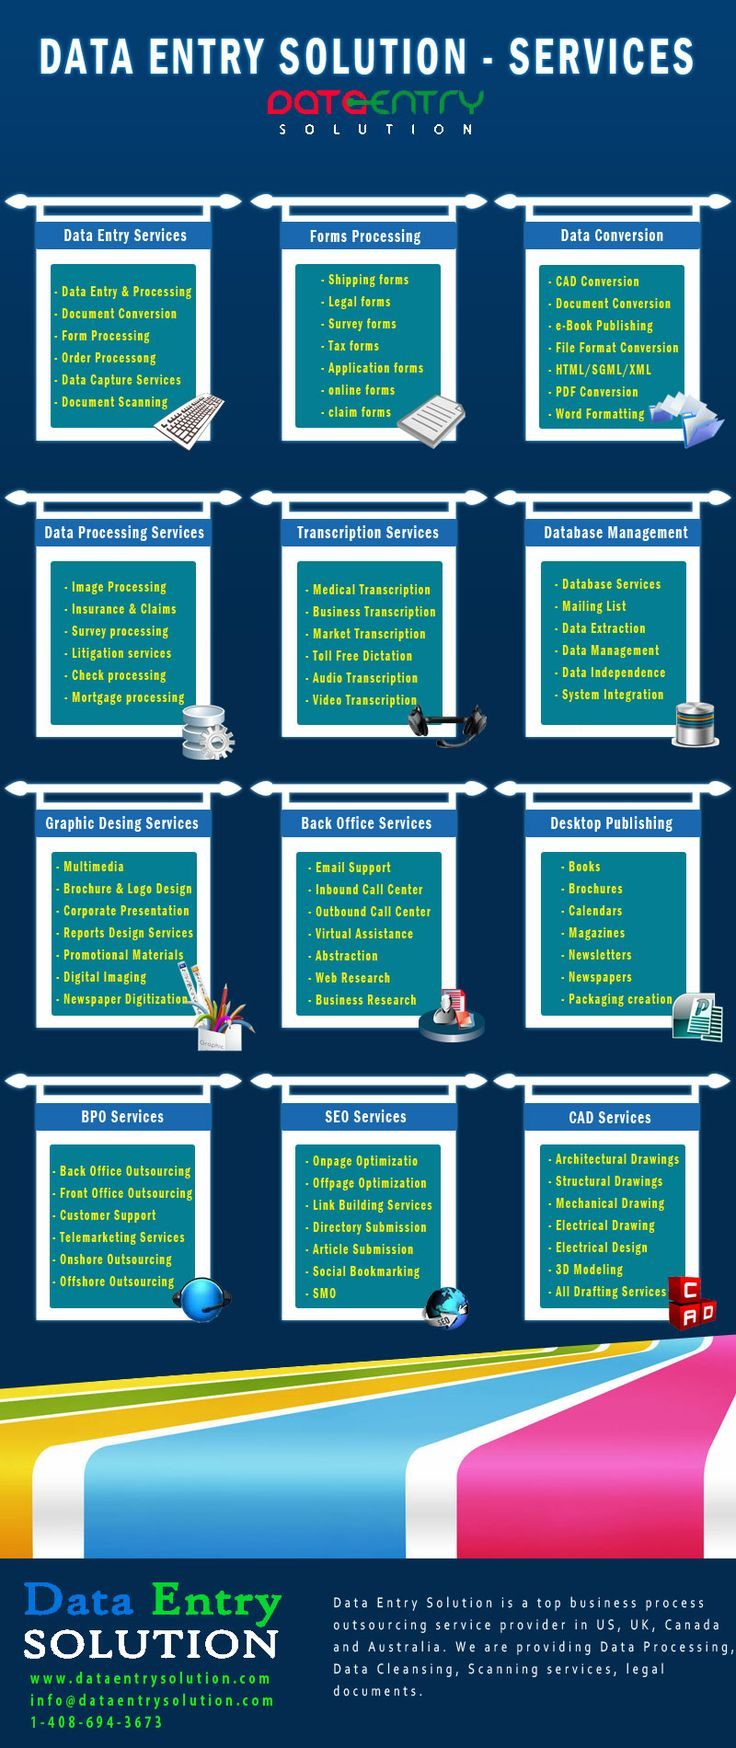 Data Entry Solution Services Infographic By Data Entry Solution